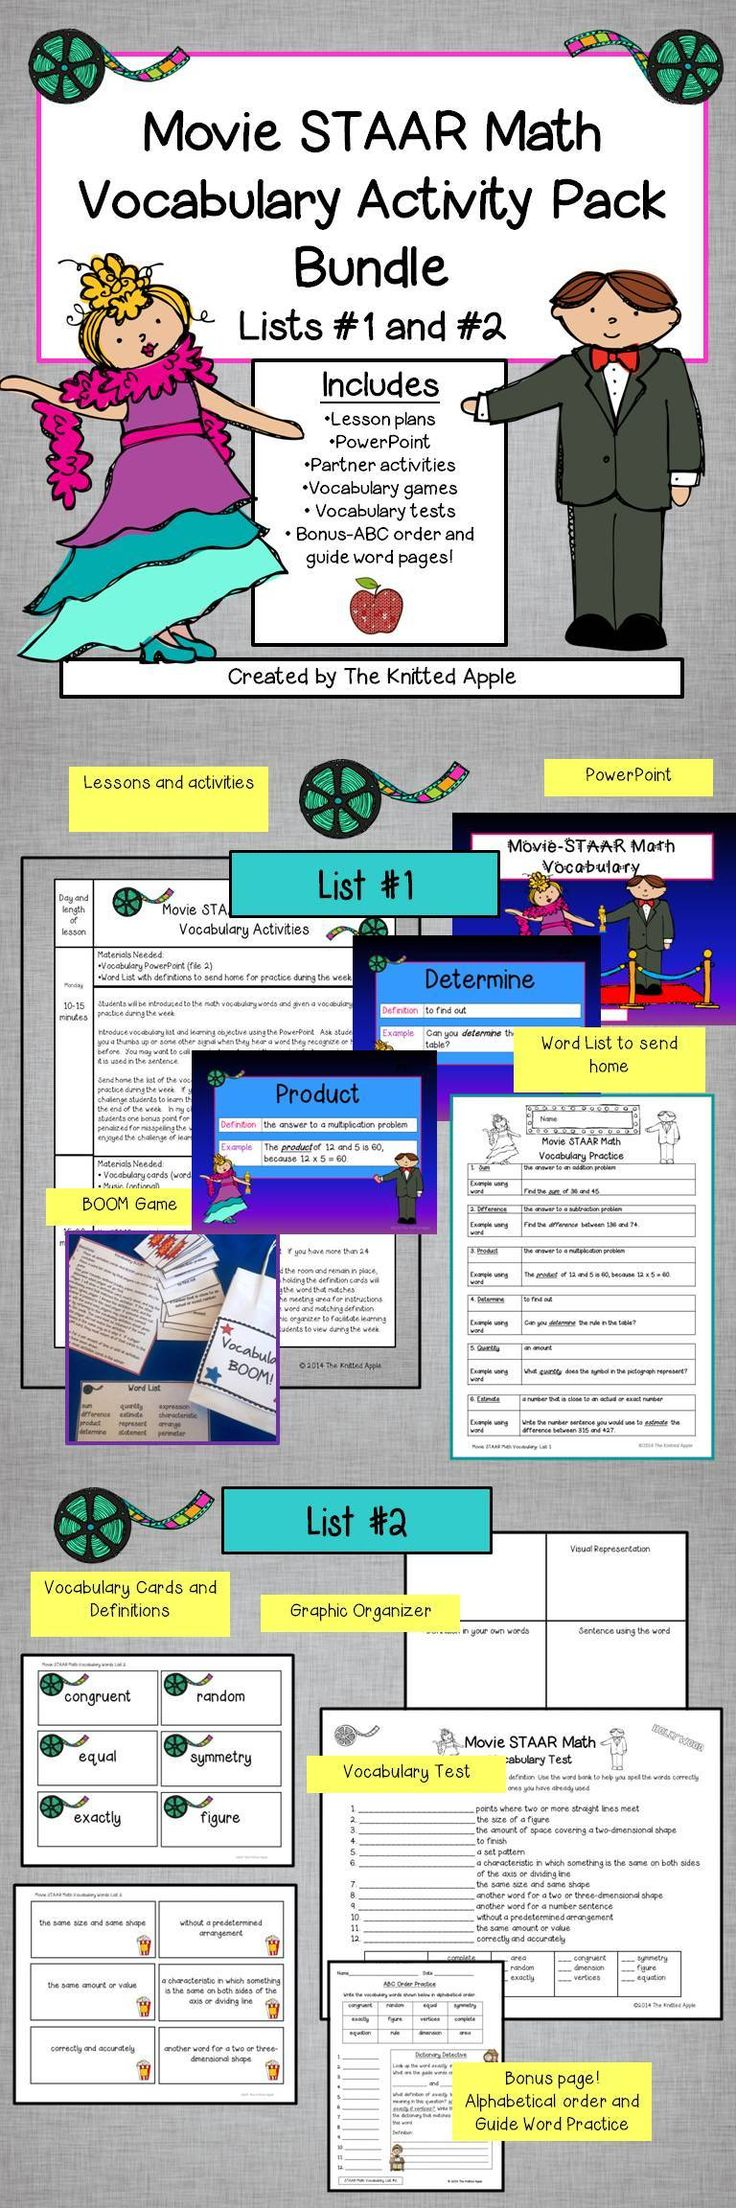 Vocabulary practice for 24 key STAAR Math vocabulary words ...